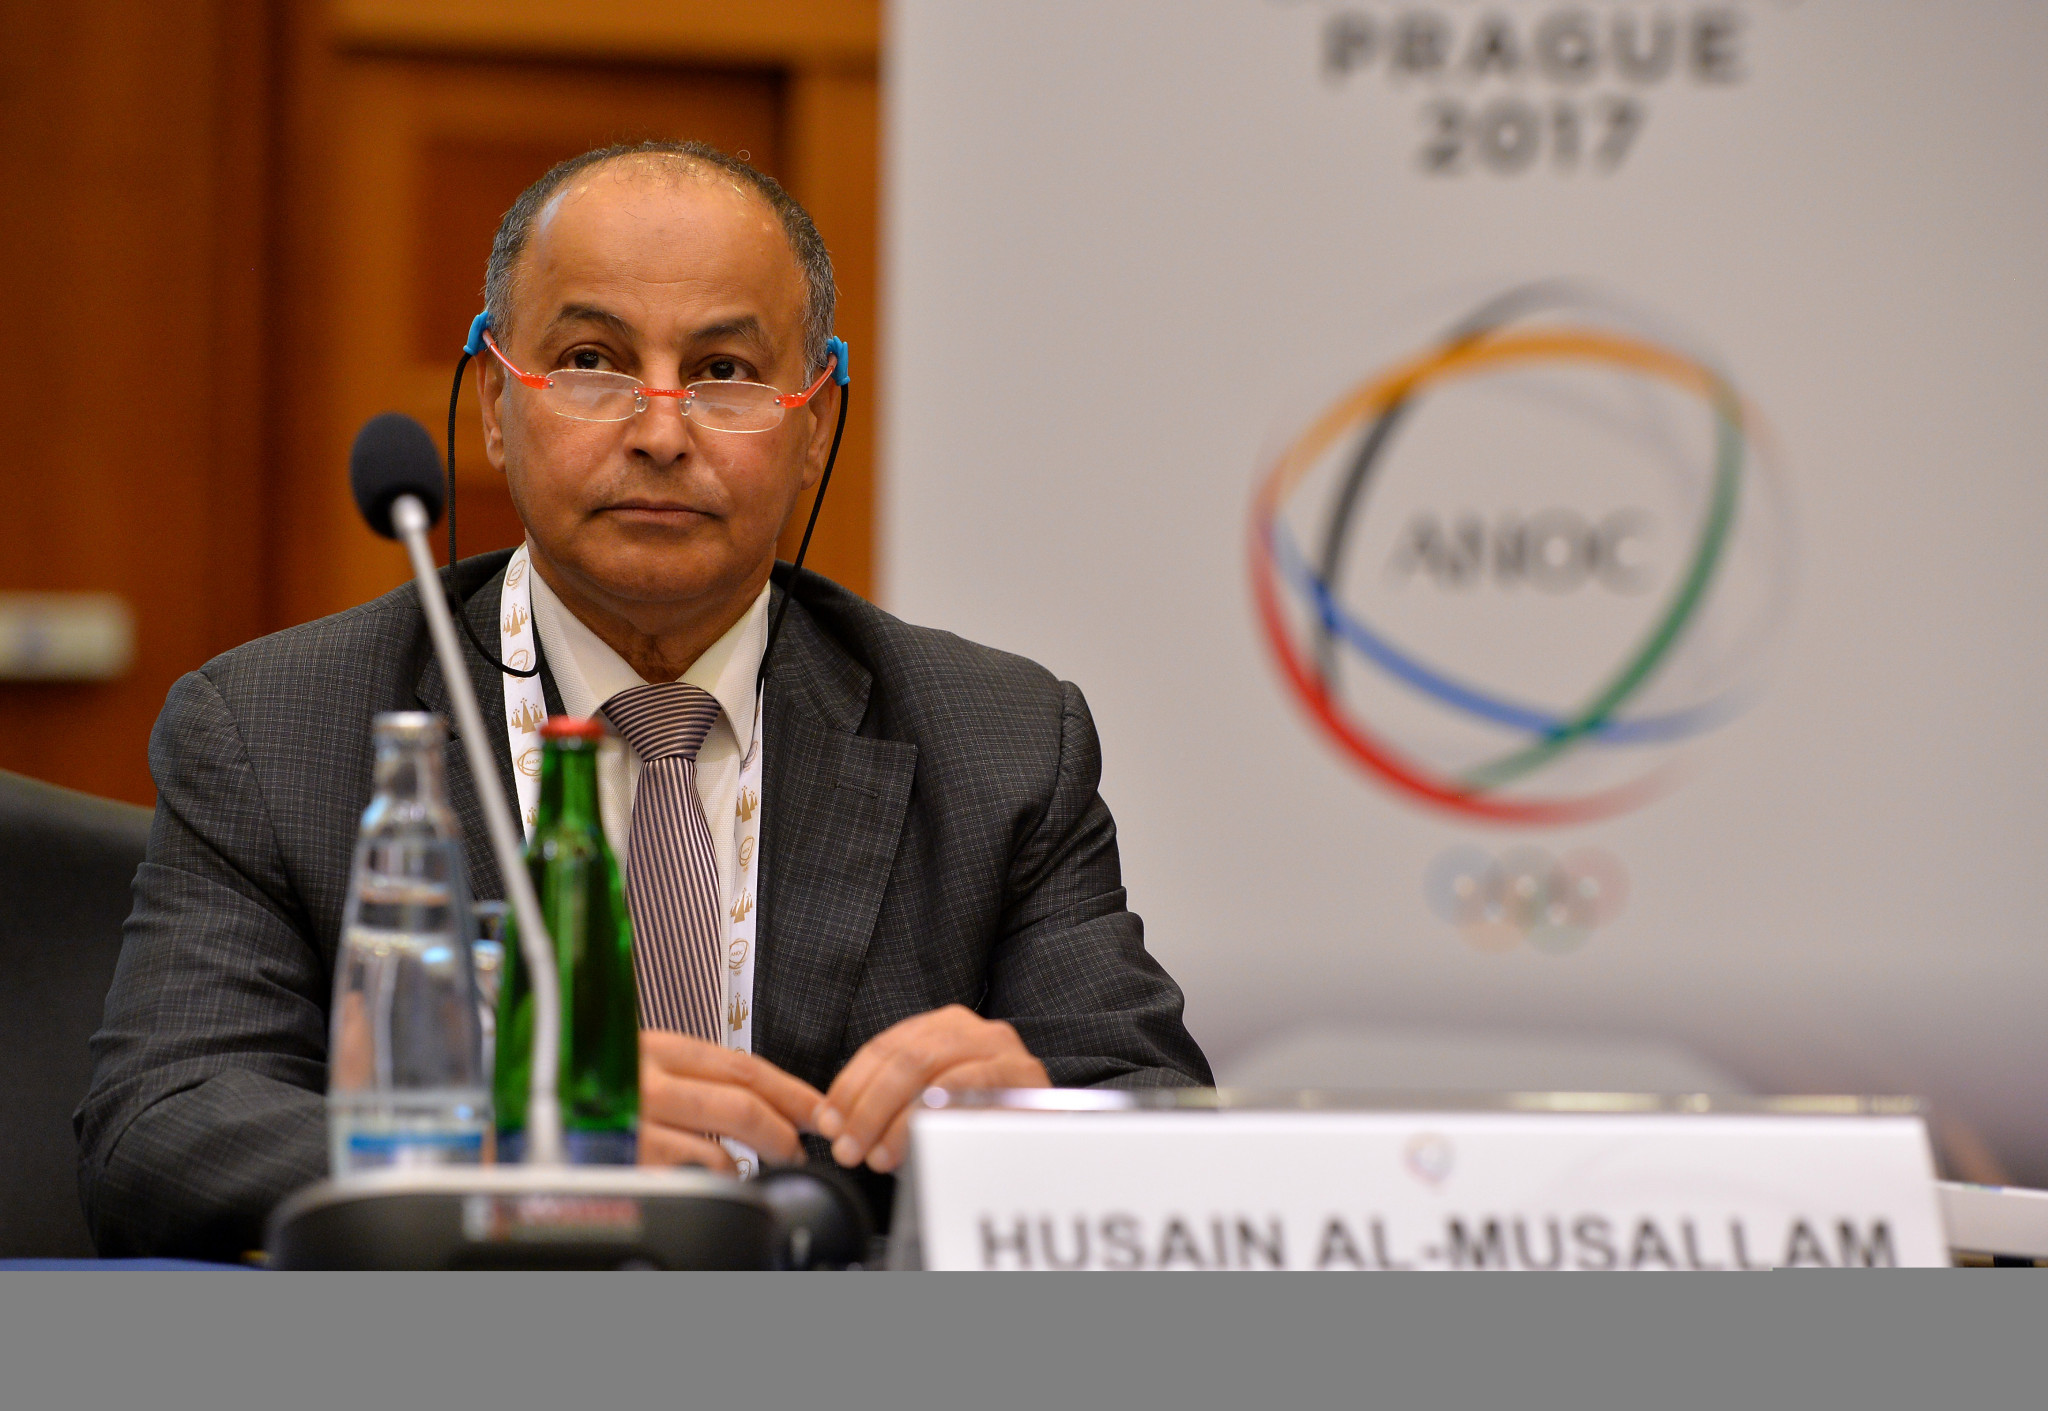 Husain Al-Musallam is in the running to become FINA President ©Getty Images